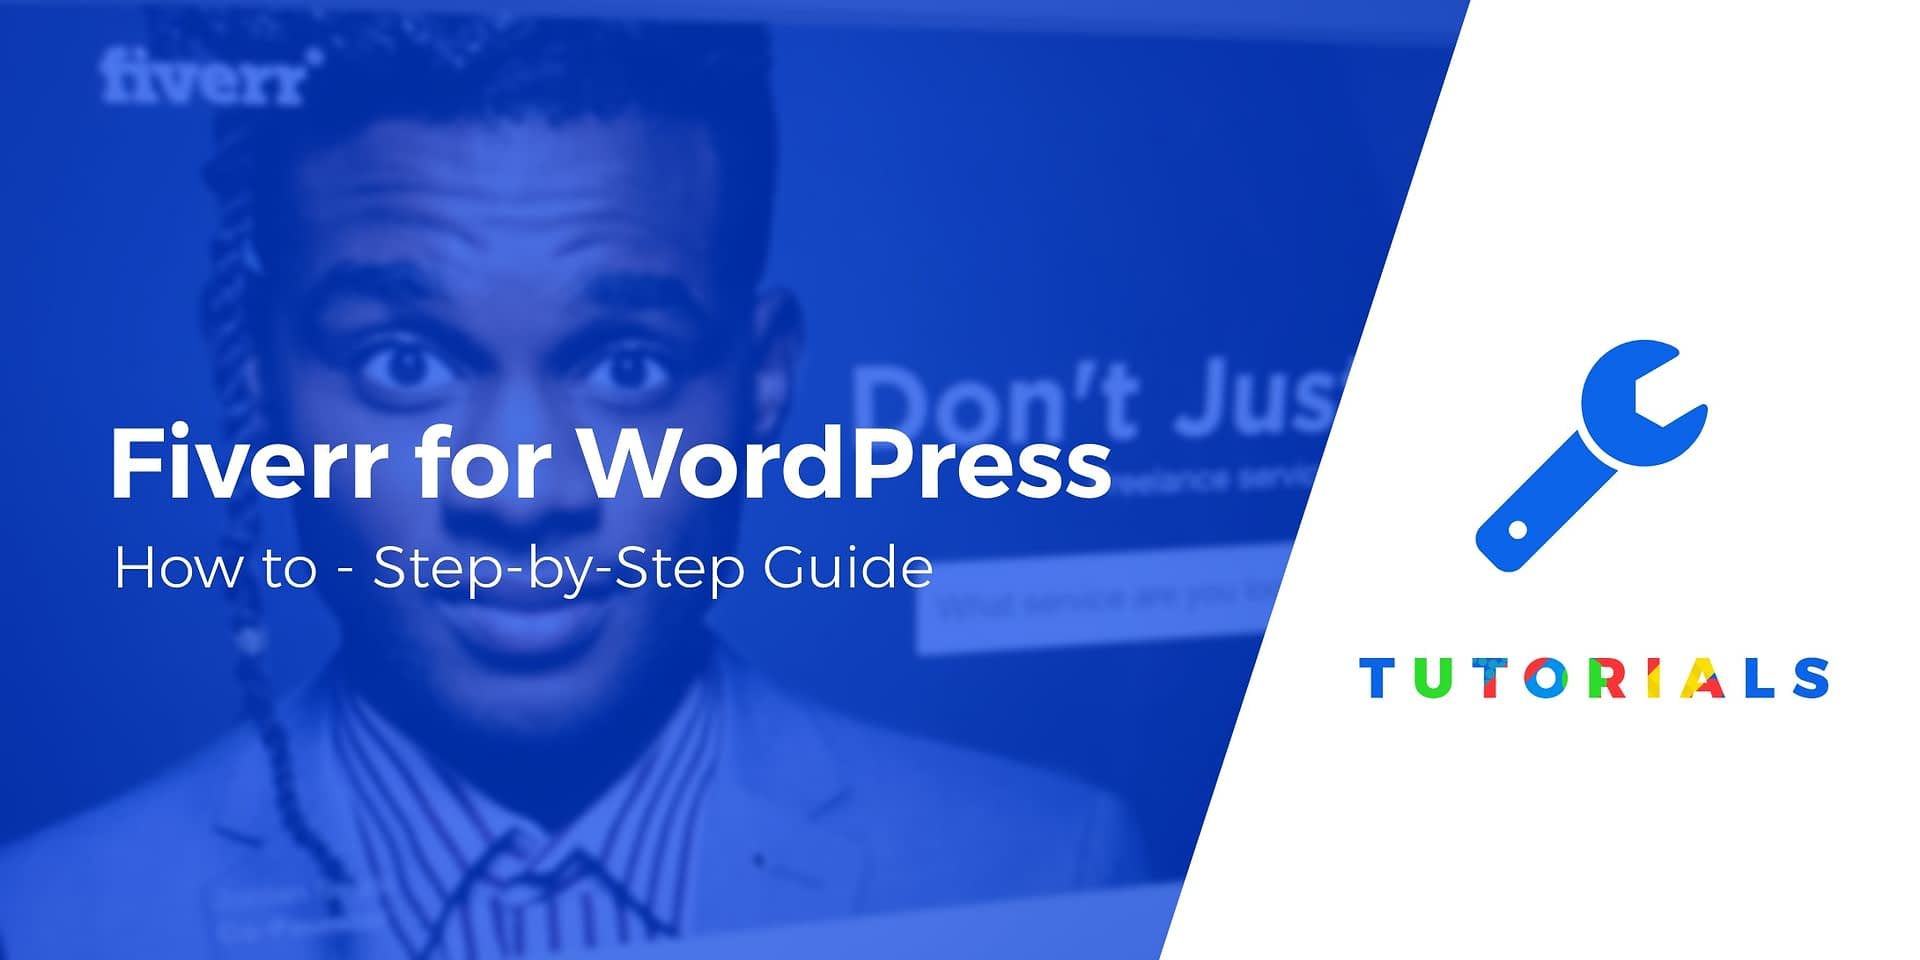 How to Use Fiverr for WordPress Tasks? A Step-by-Step